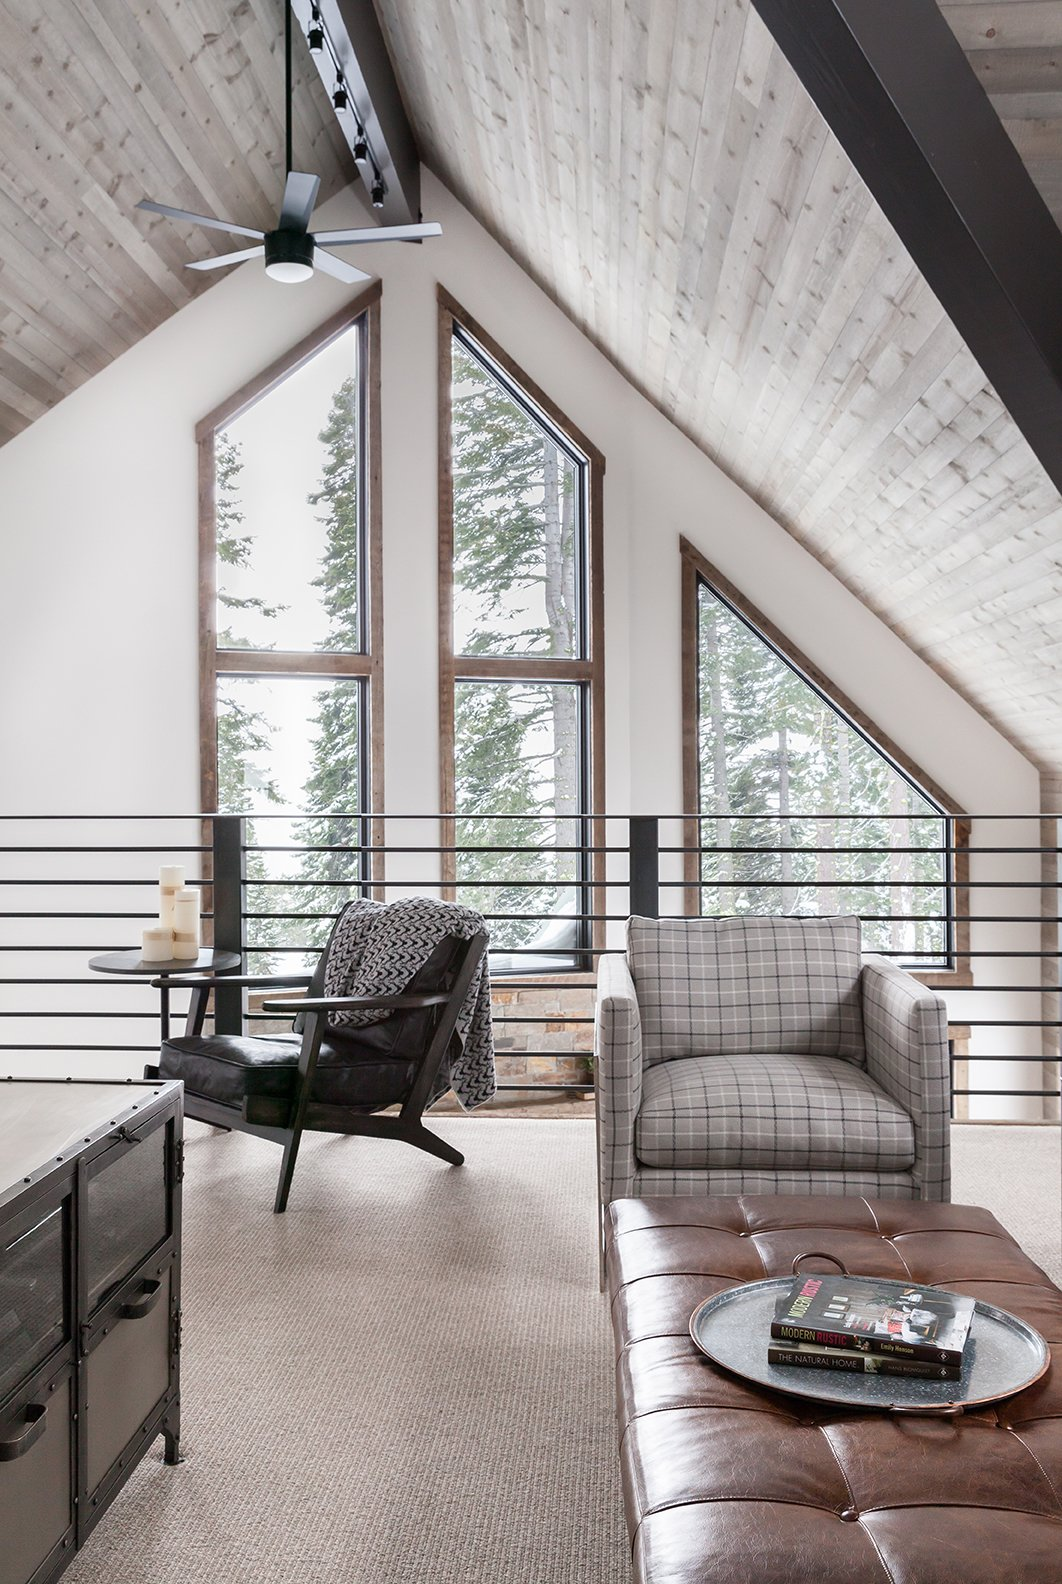 Living Room, Ottomans, Storage, Chair, End Tables, Carpet Floor, and Track Lighting  Dwell Magazine : September / October 2017  Photos from In This A-Frame Cabin Makeover, Simplicity Is Key